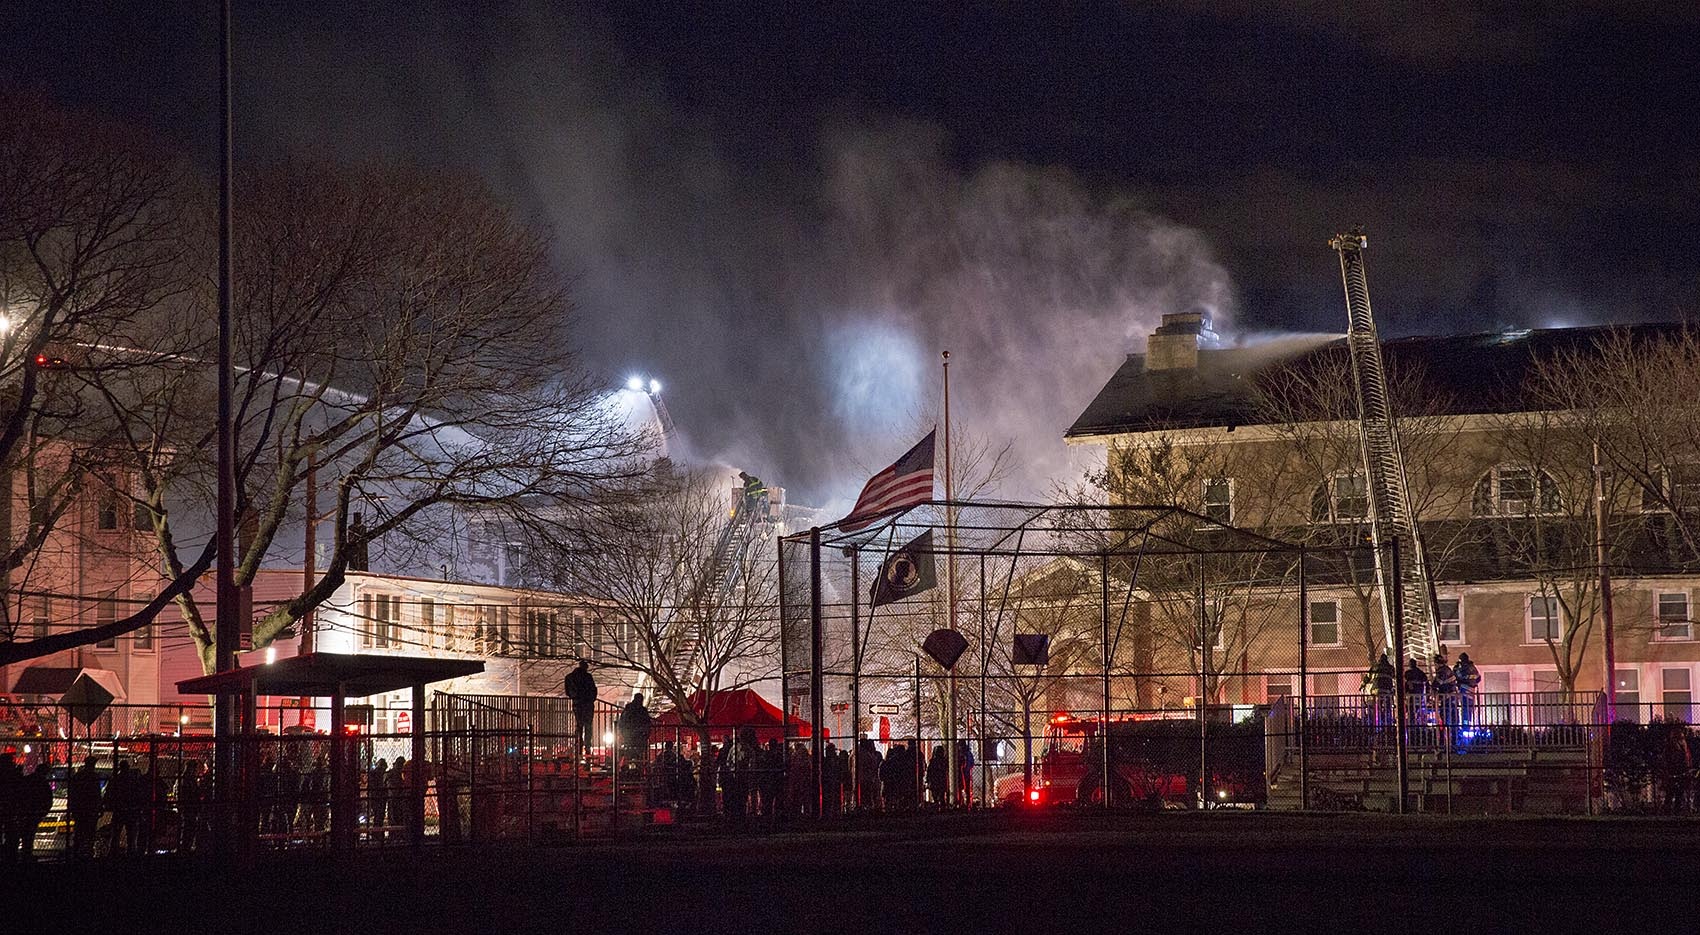 A crowd gathered as firefighters struggled to douse a blaze on Berkshire Street and York Street. (Robin Lubbock/WBUR)